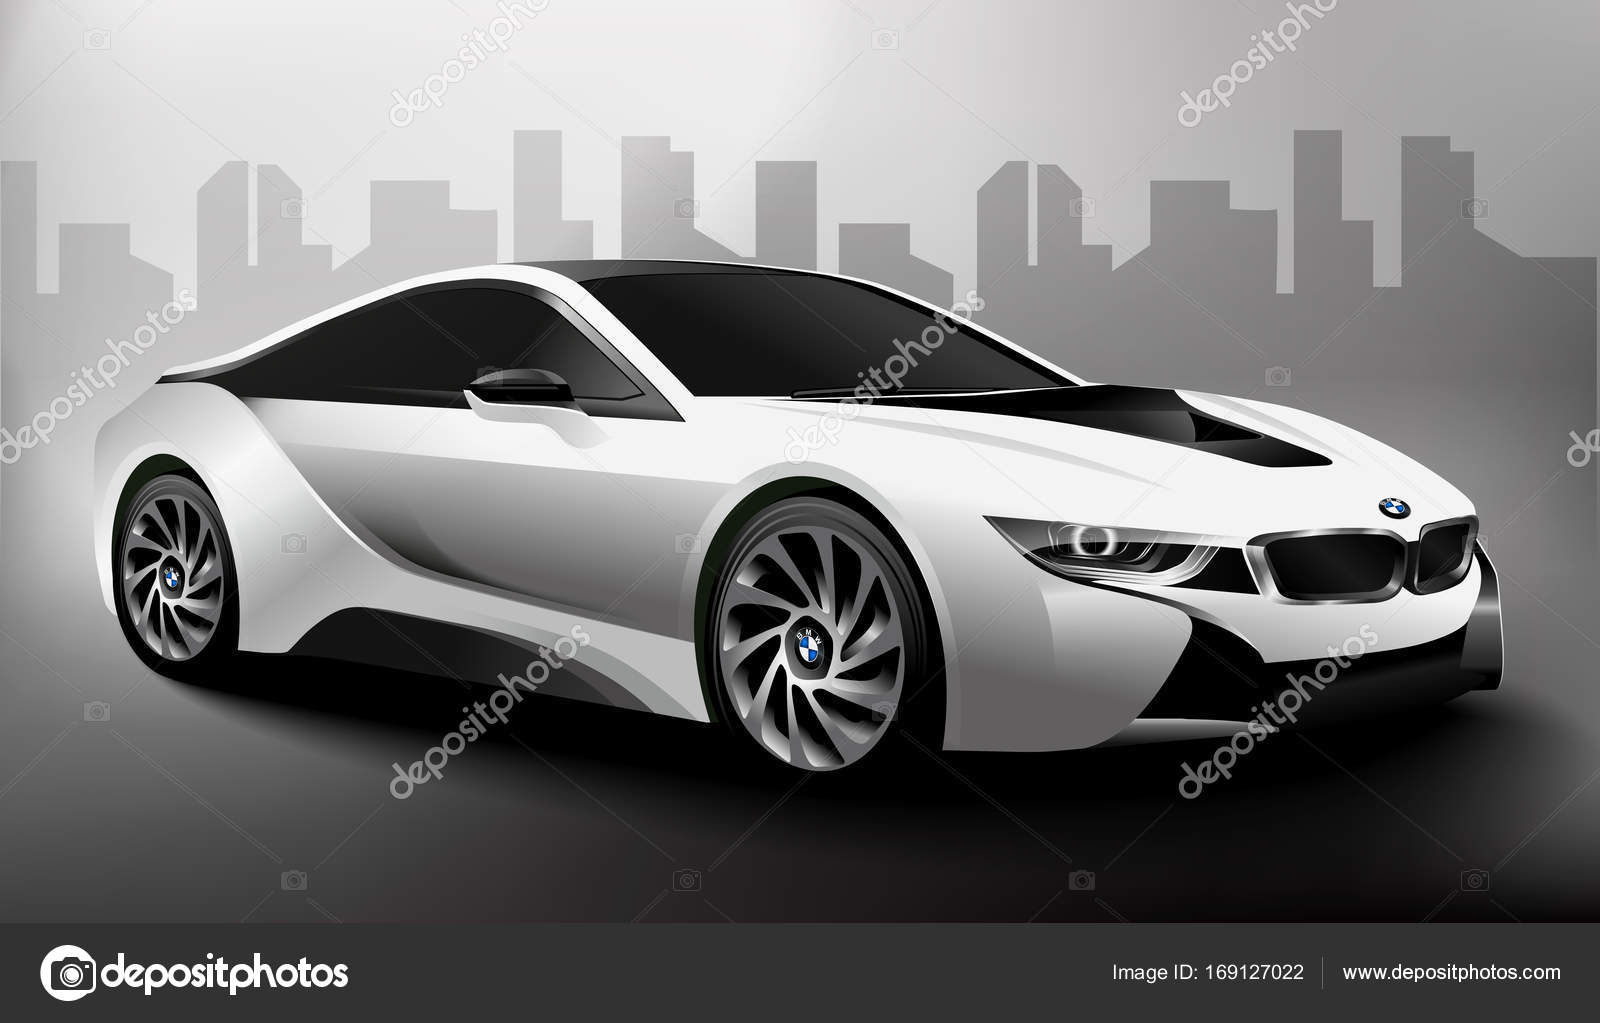 Bmw I8 Black Stock Vector C Nata Whitedesign 169127022